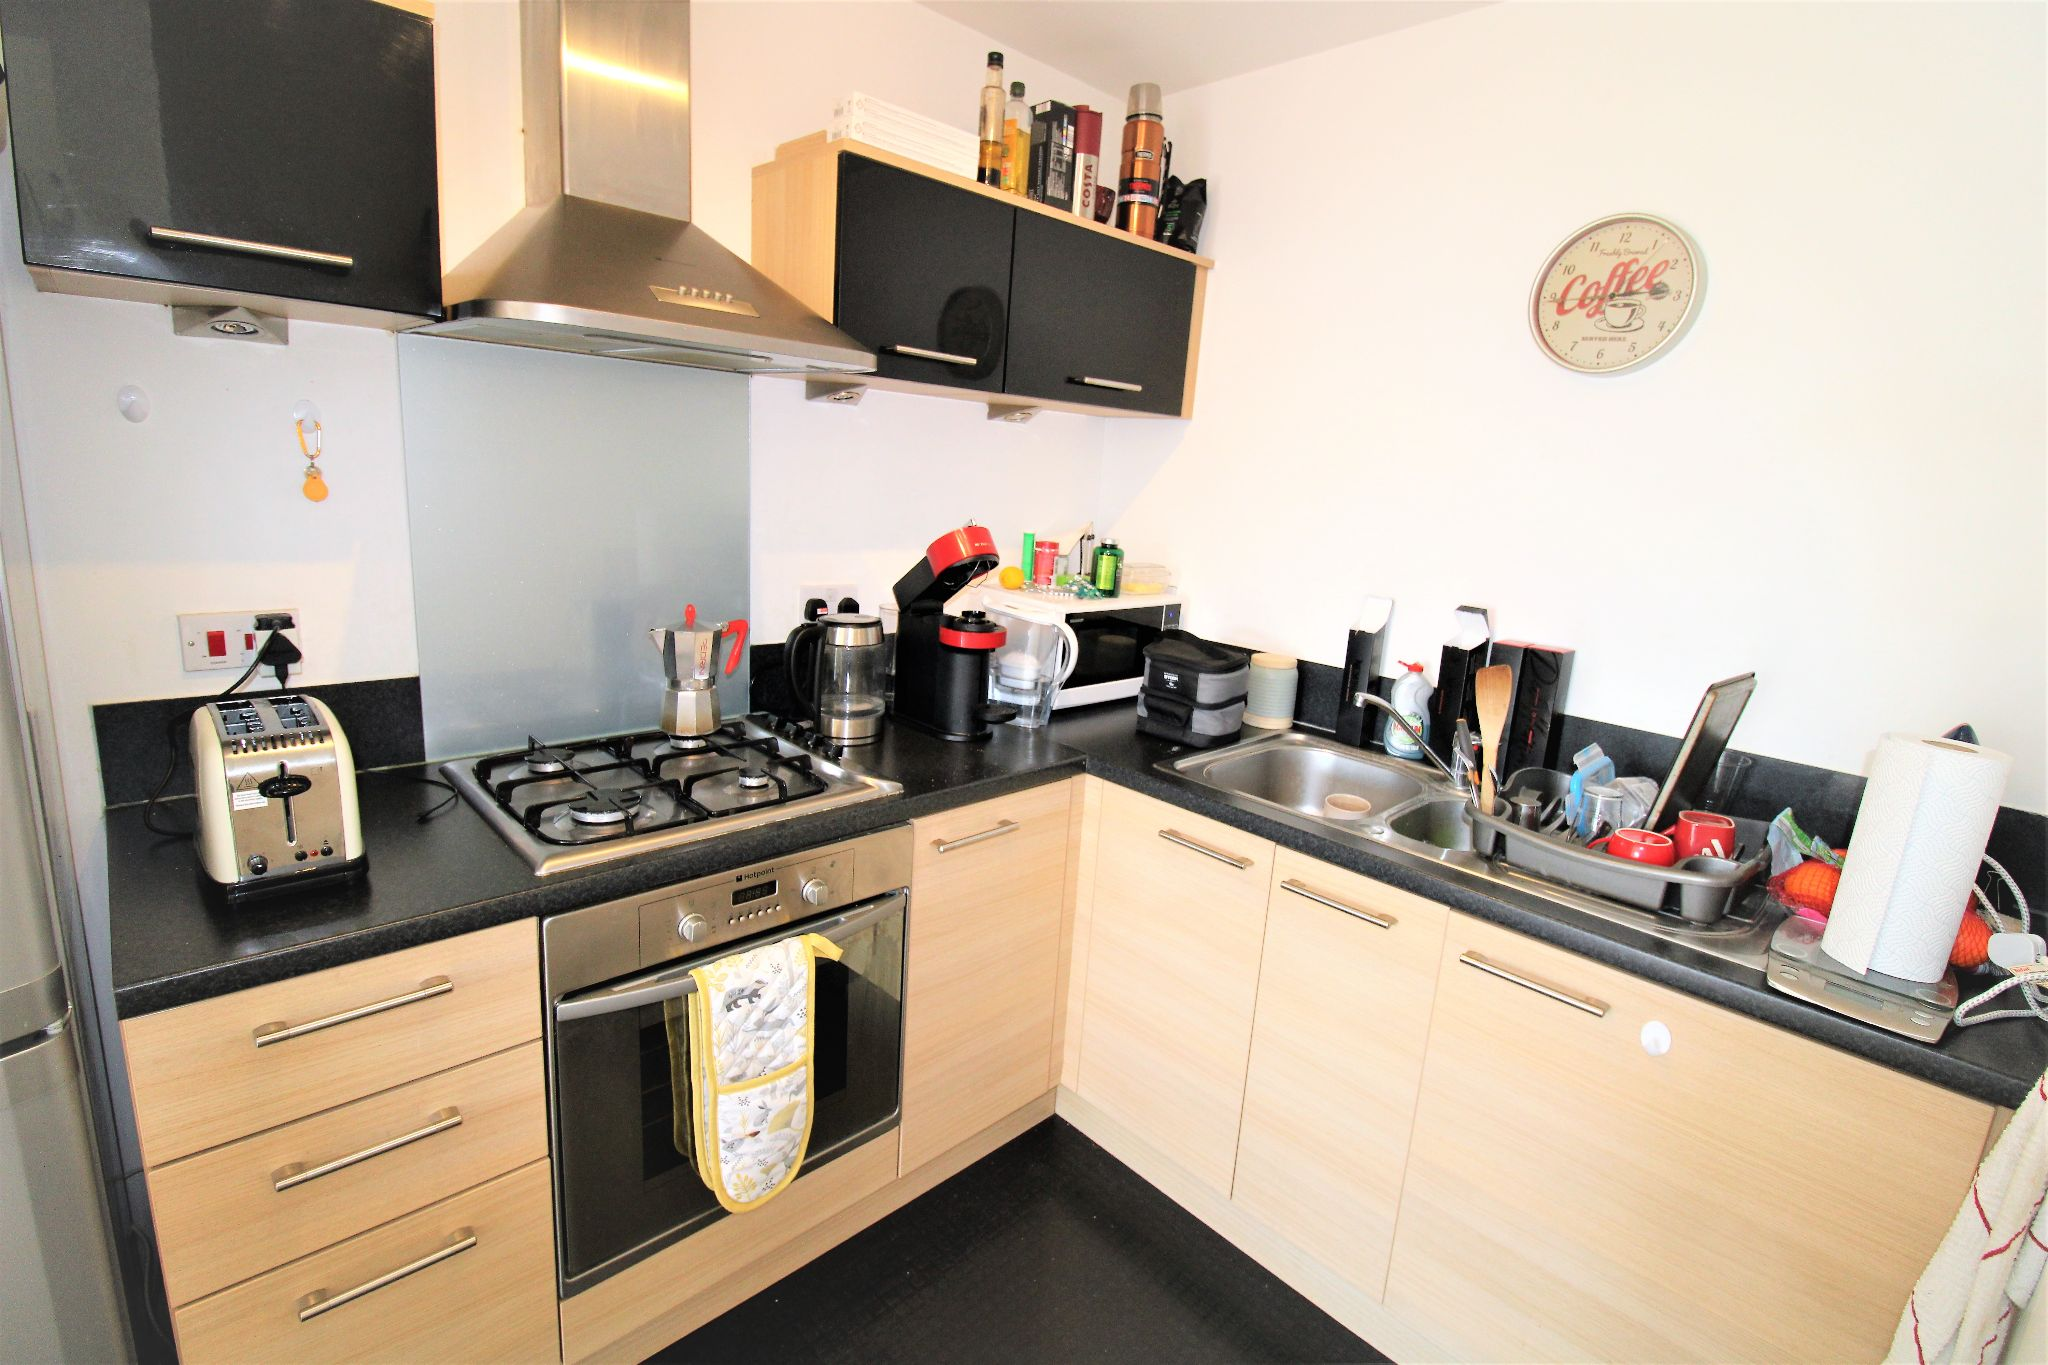 1 Bedroom Apartment Flat/apartment For Sale - Kitchen